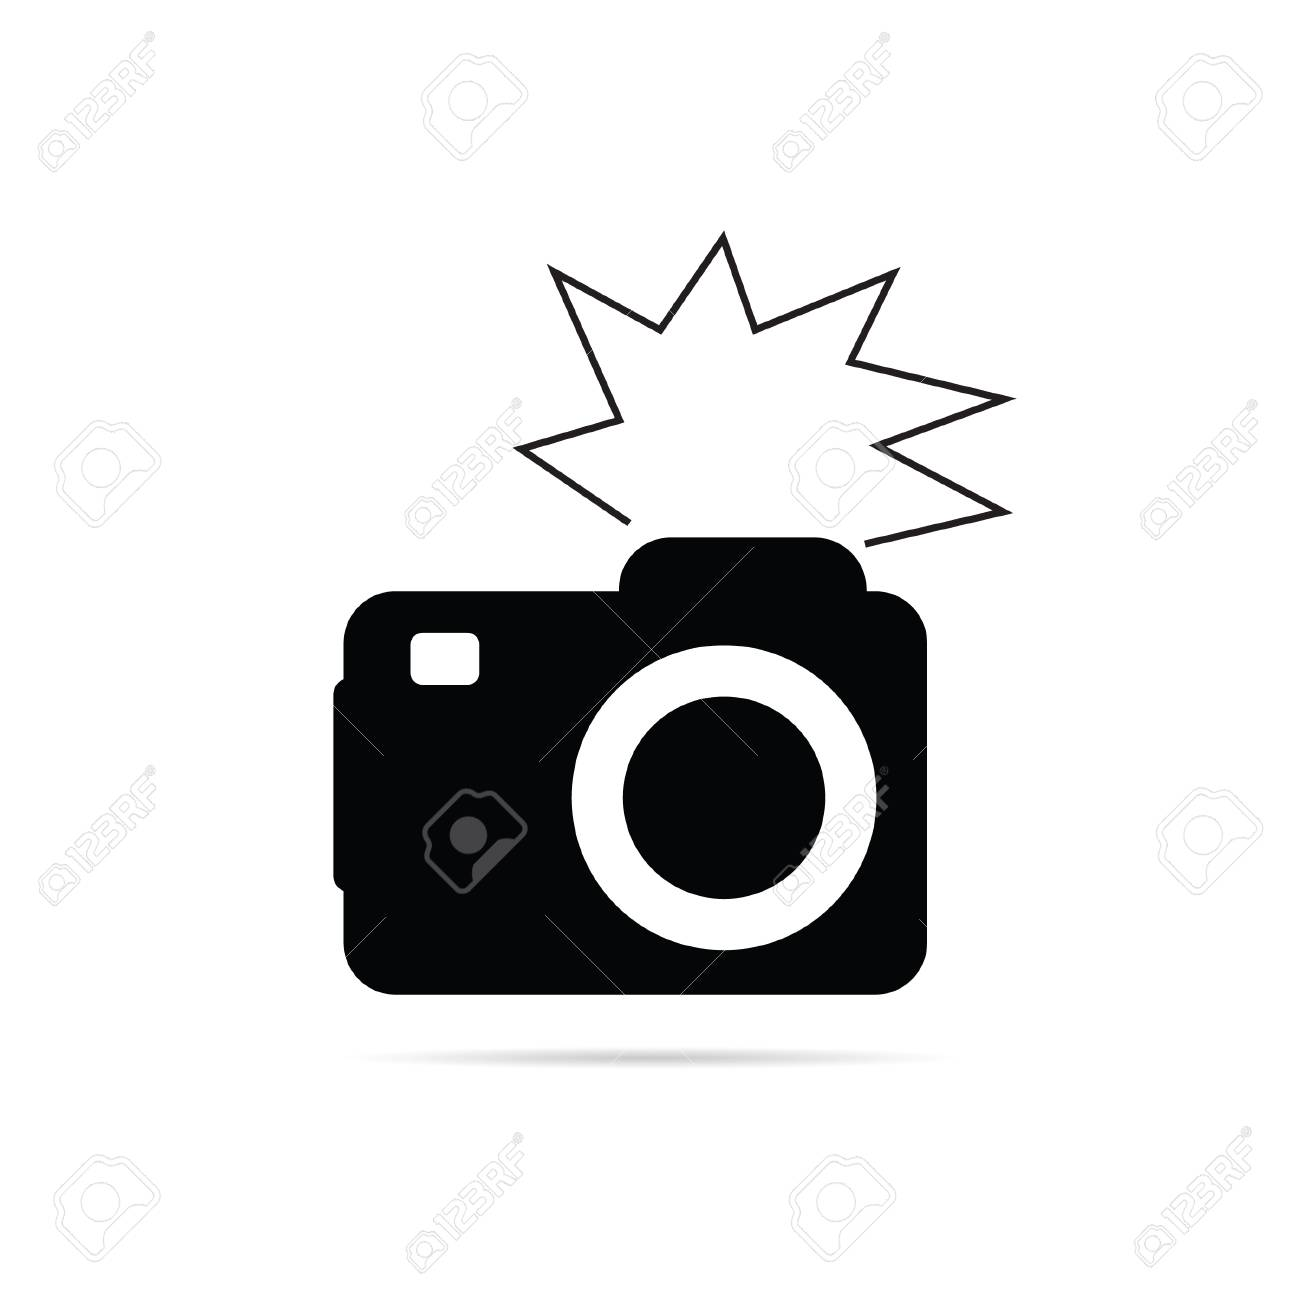 camera flash black and white vector illustration.